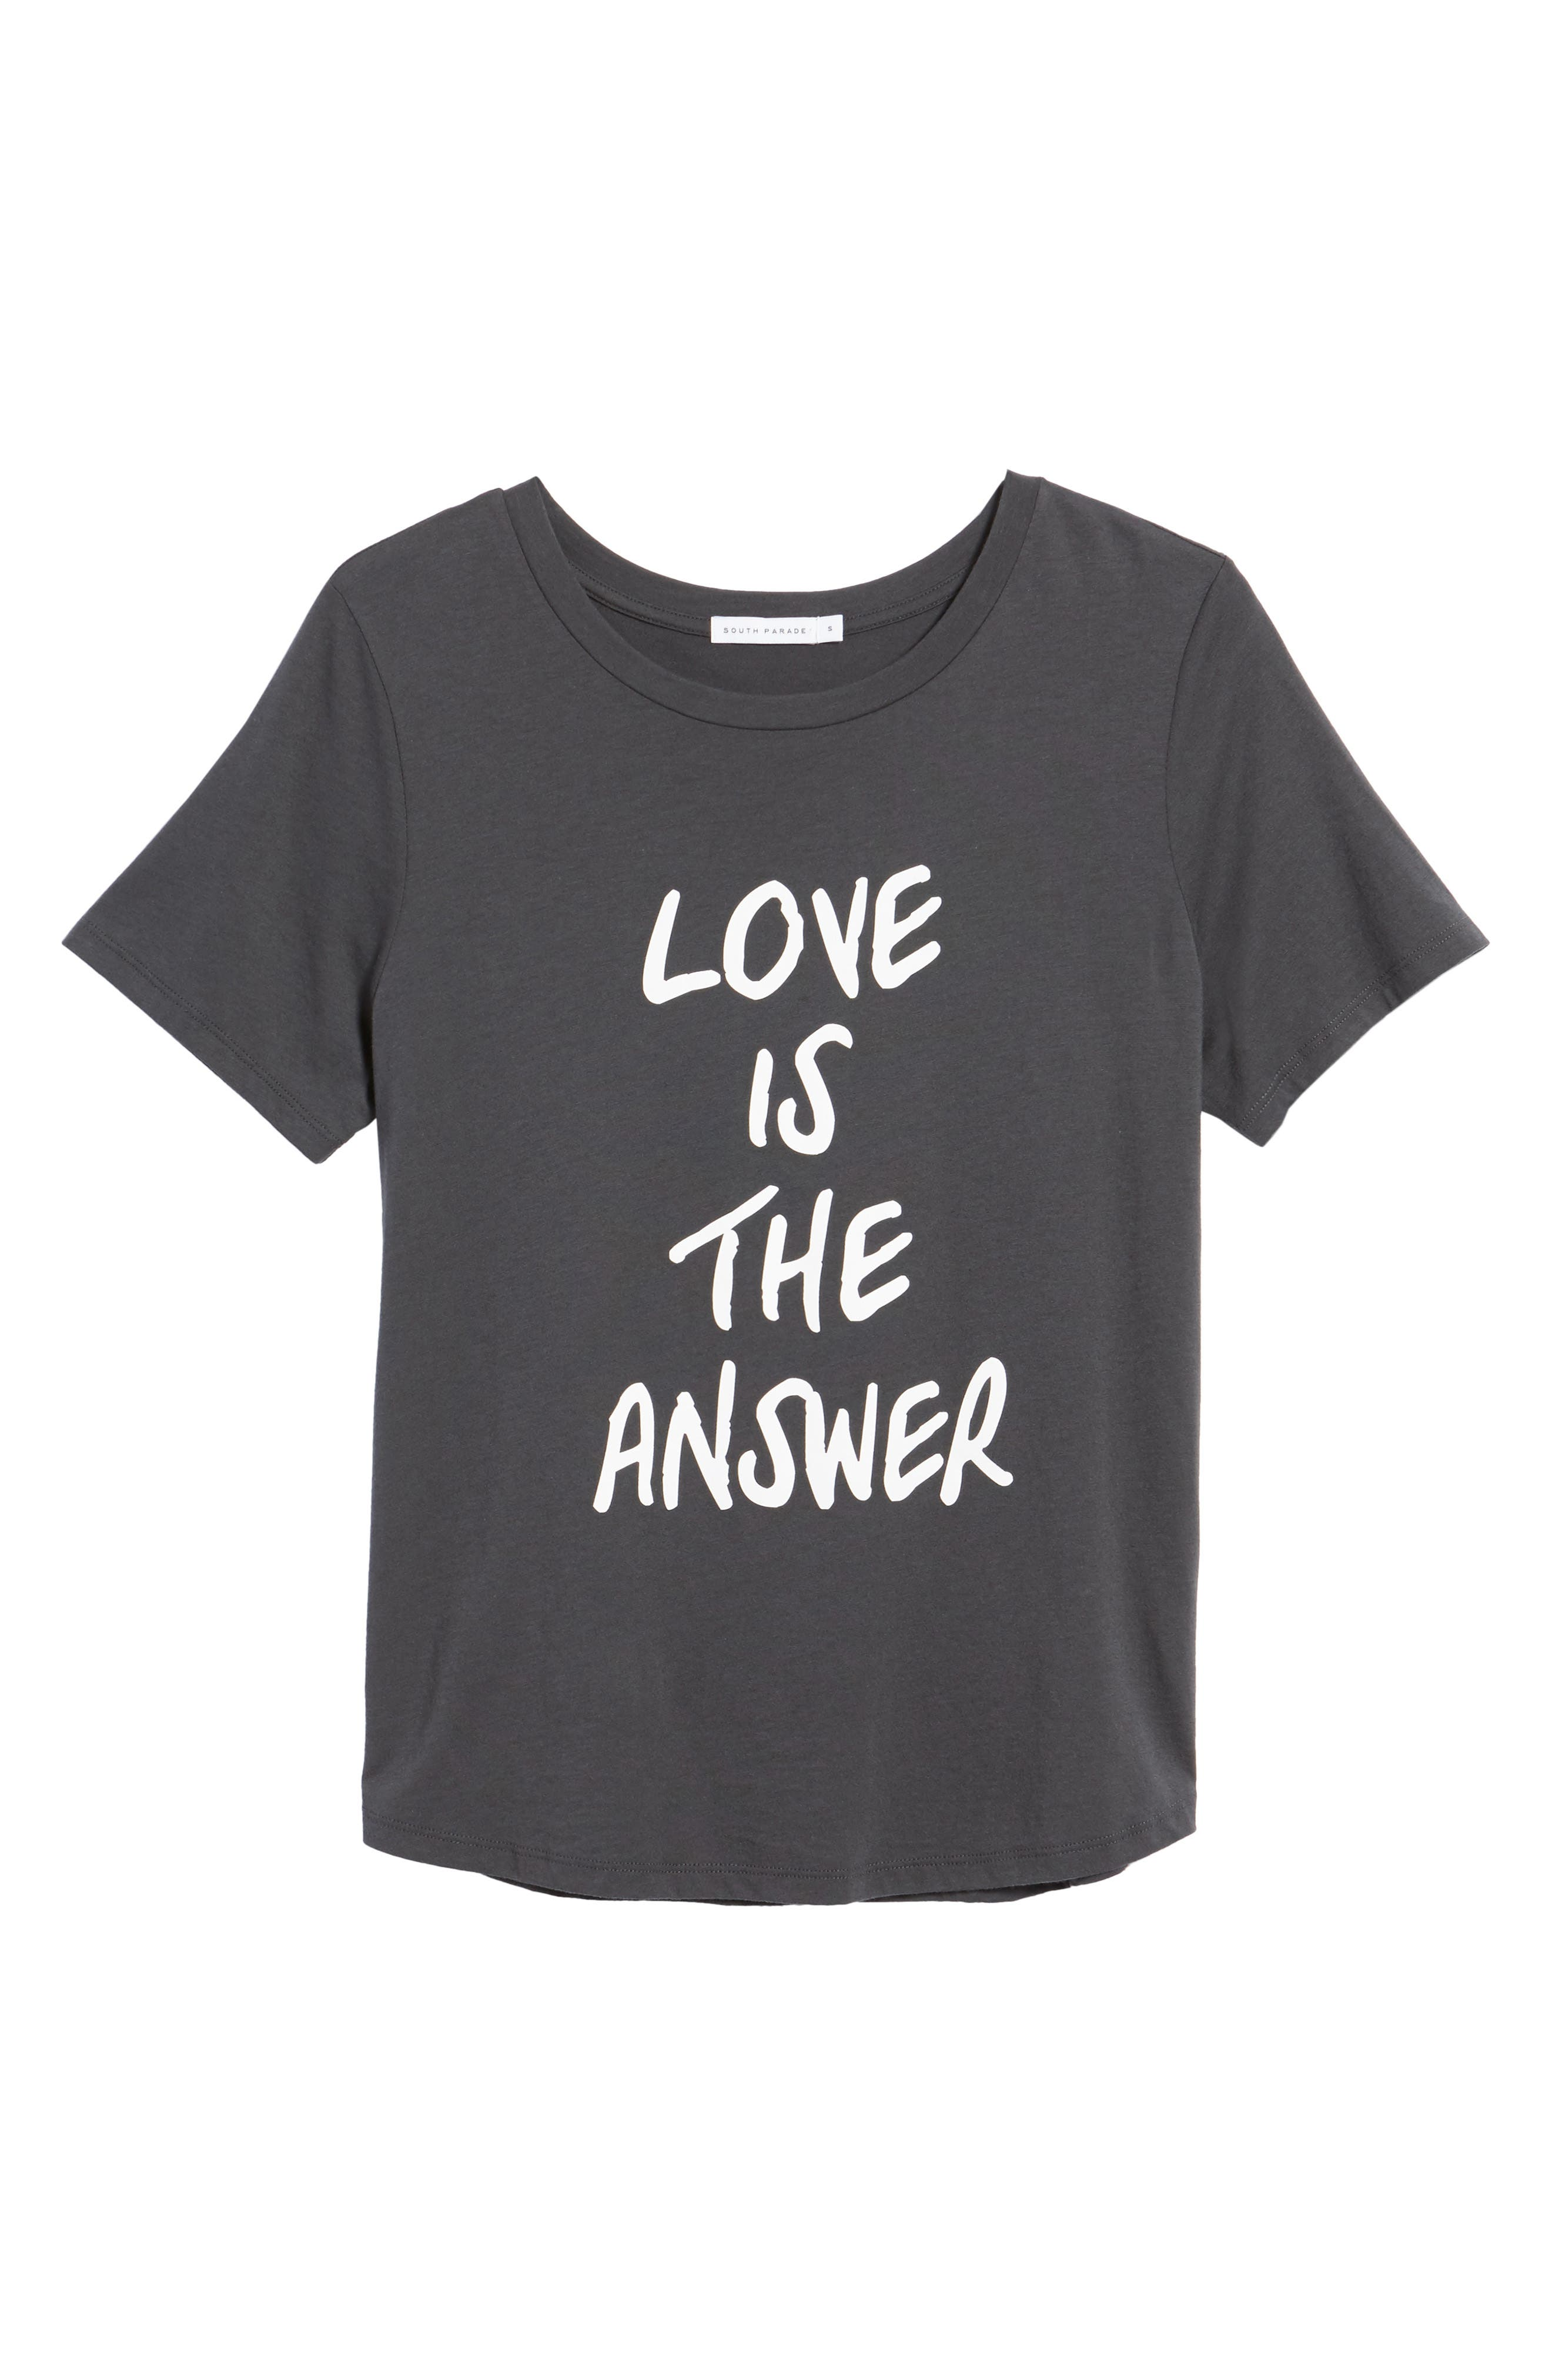 Love is the Answer Tee,                             Alternate thumbnail 6, color,                             001